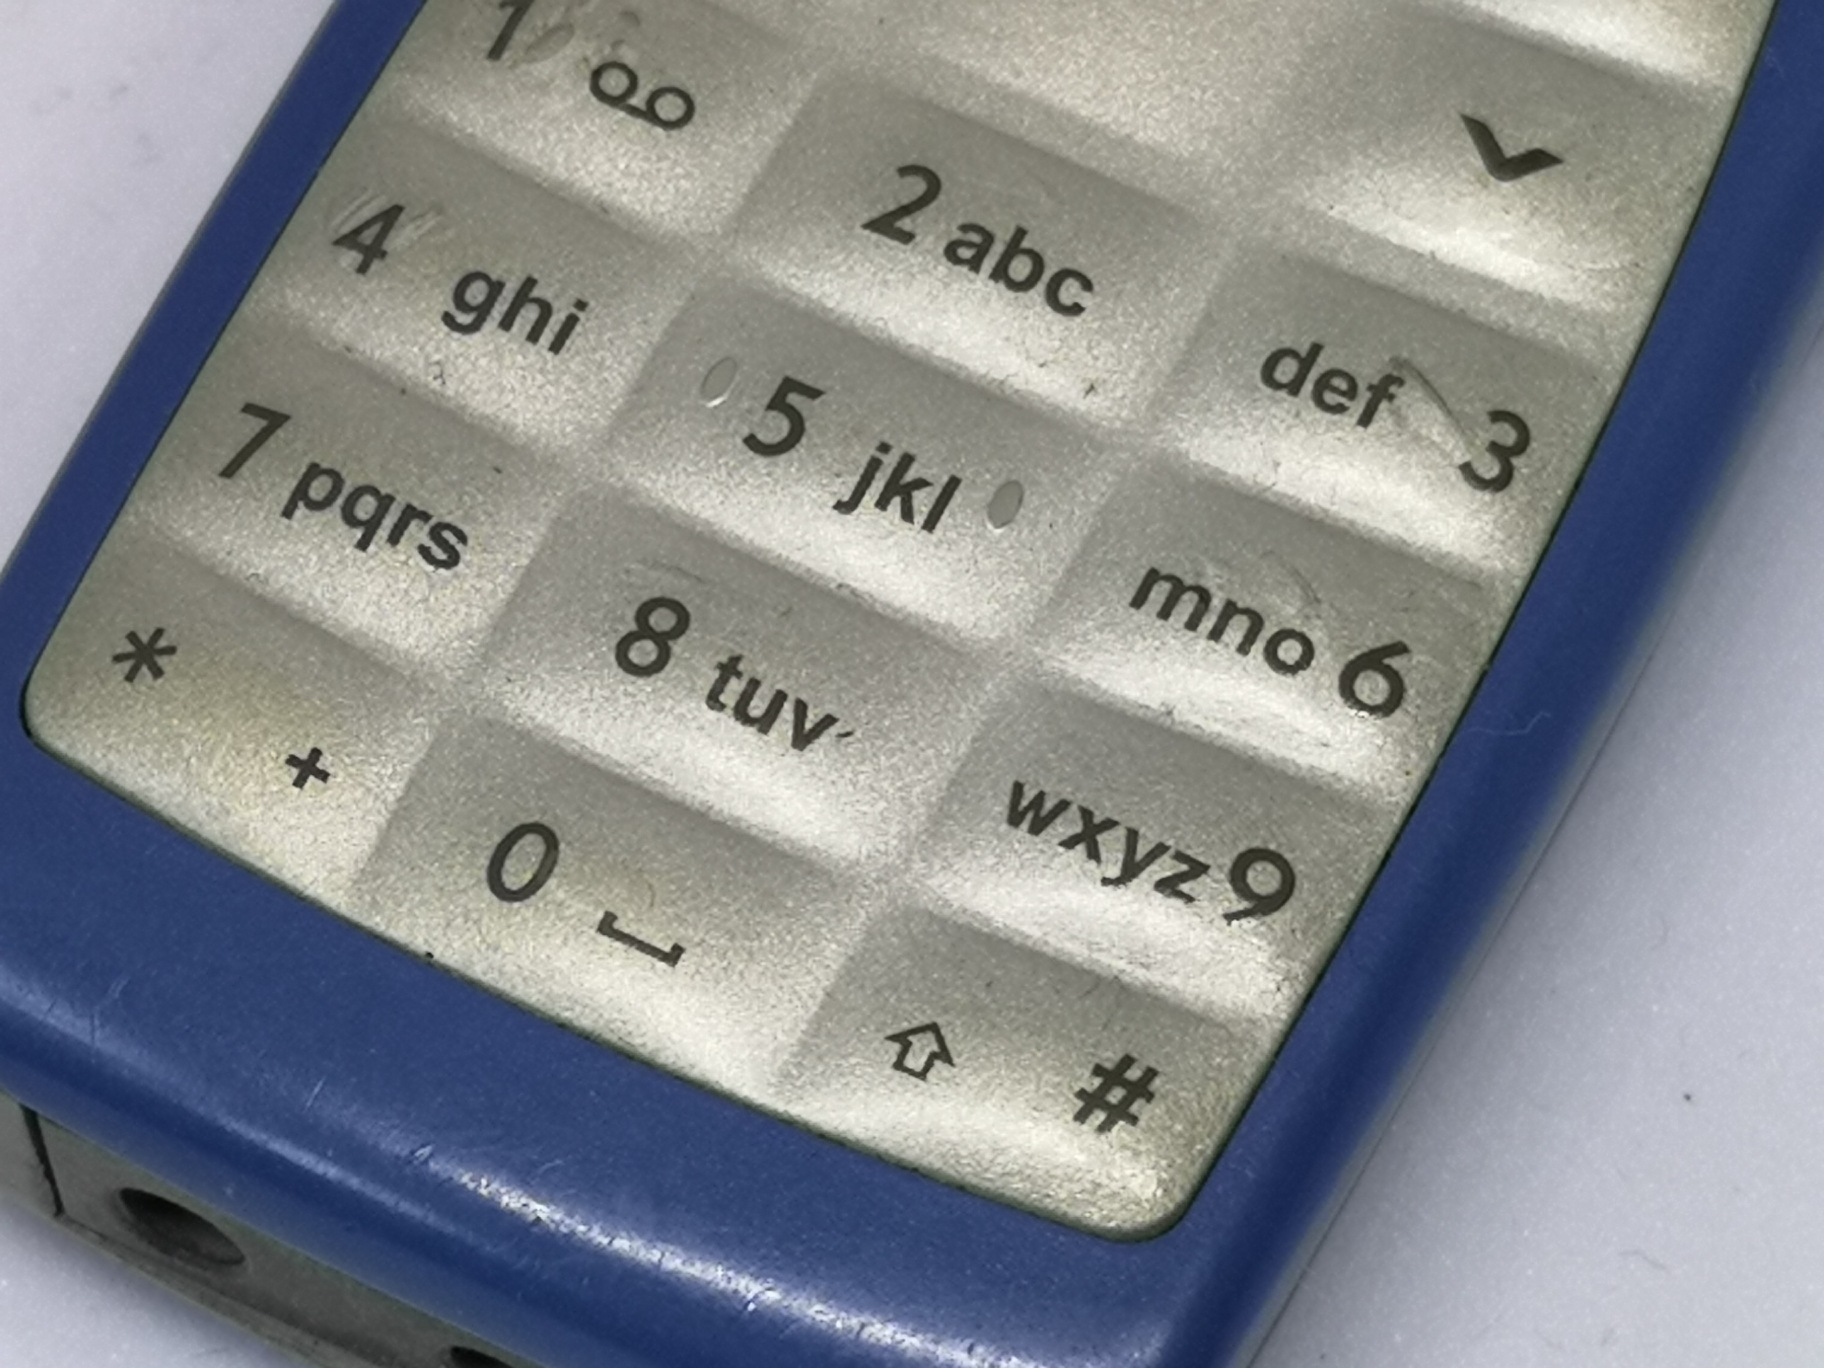 Nokia 1100 Review - World's Best Selling Mobile Phone